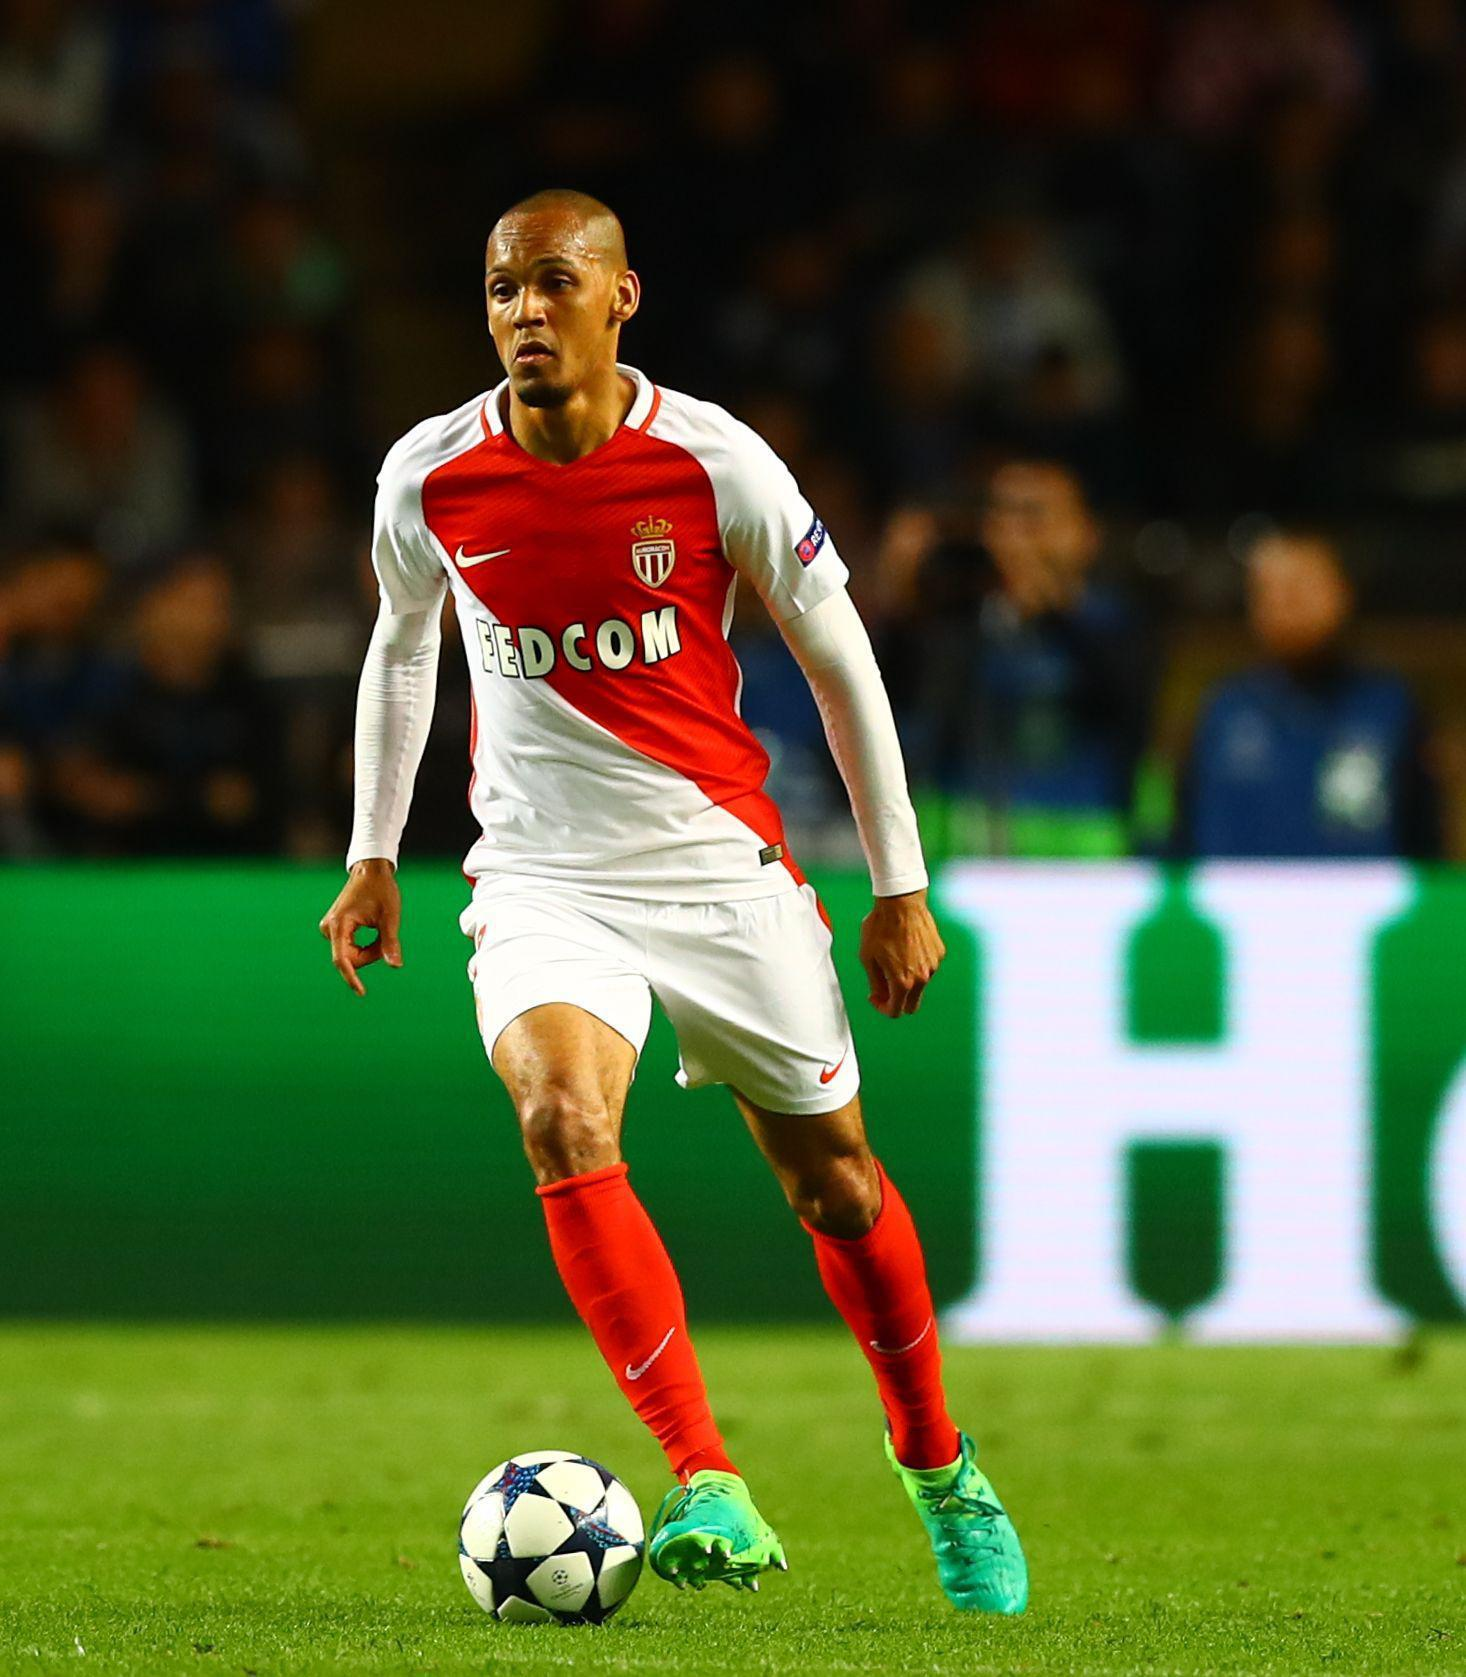 Fabinho is one of the Monaco players wanted by Europe's biggest sides